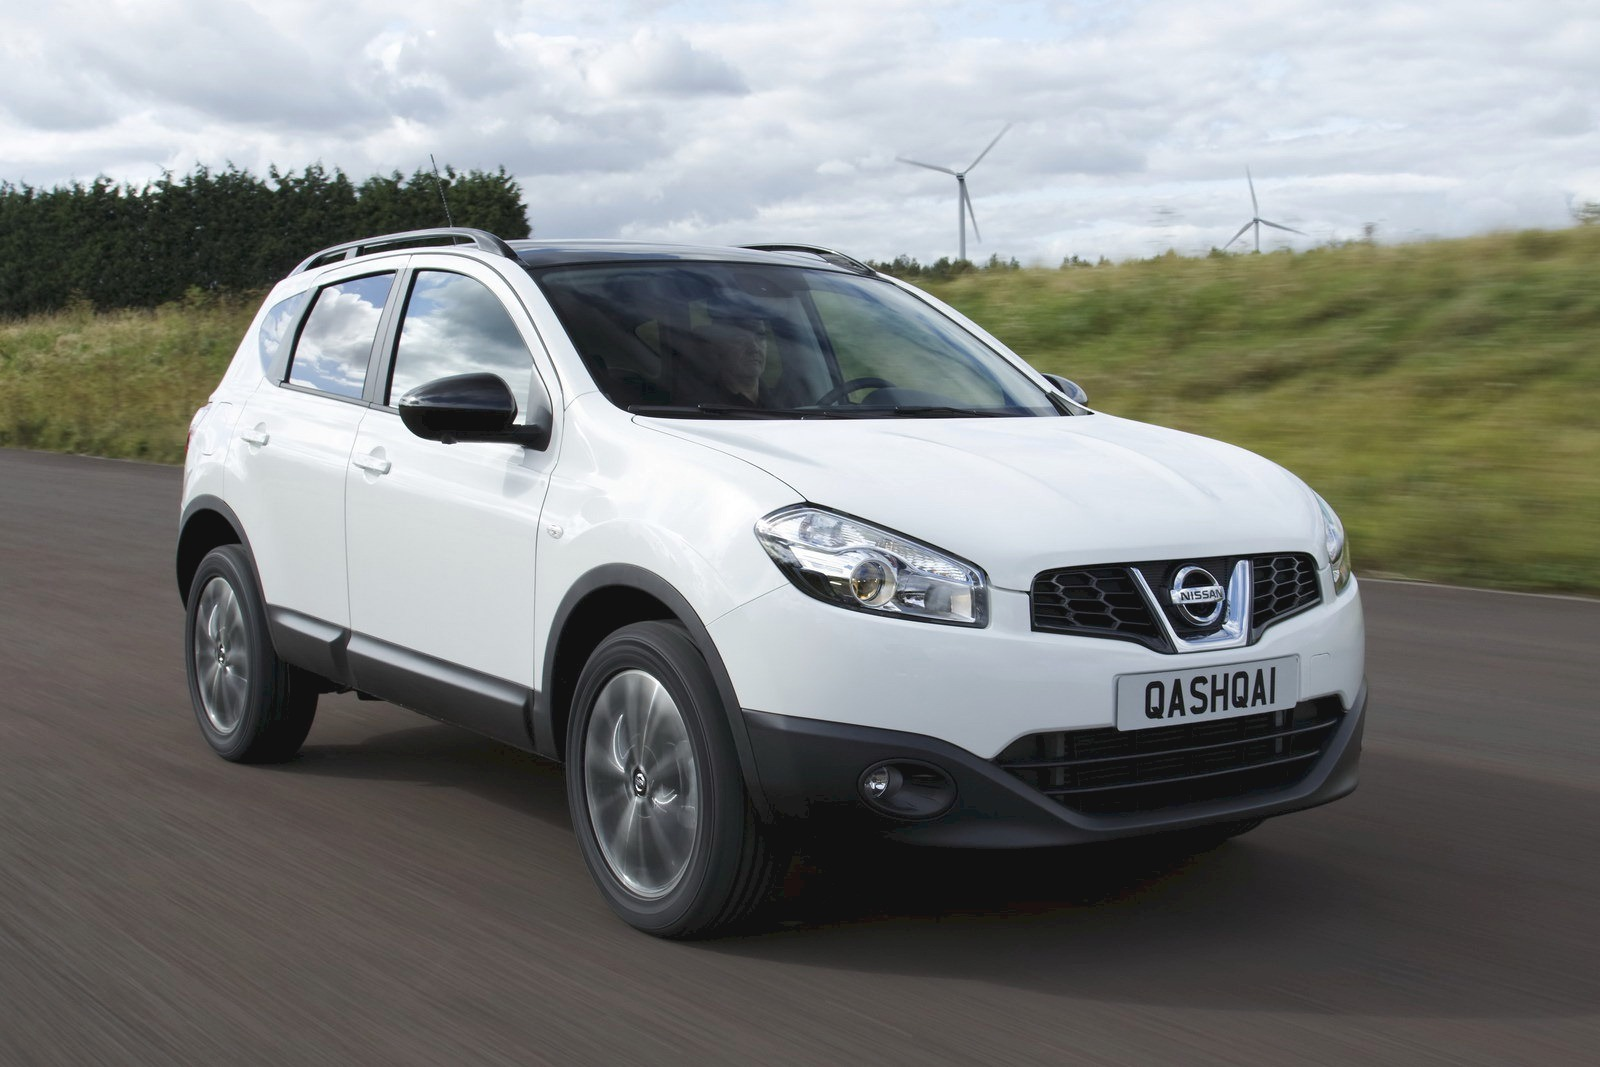 2013 nissan qashqai deluxe suv views car. Black Bedroom Furniture Sets. Home Design Ideas